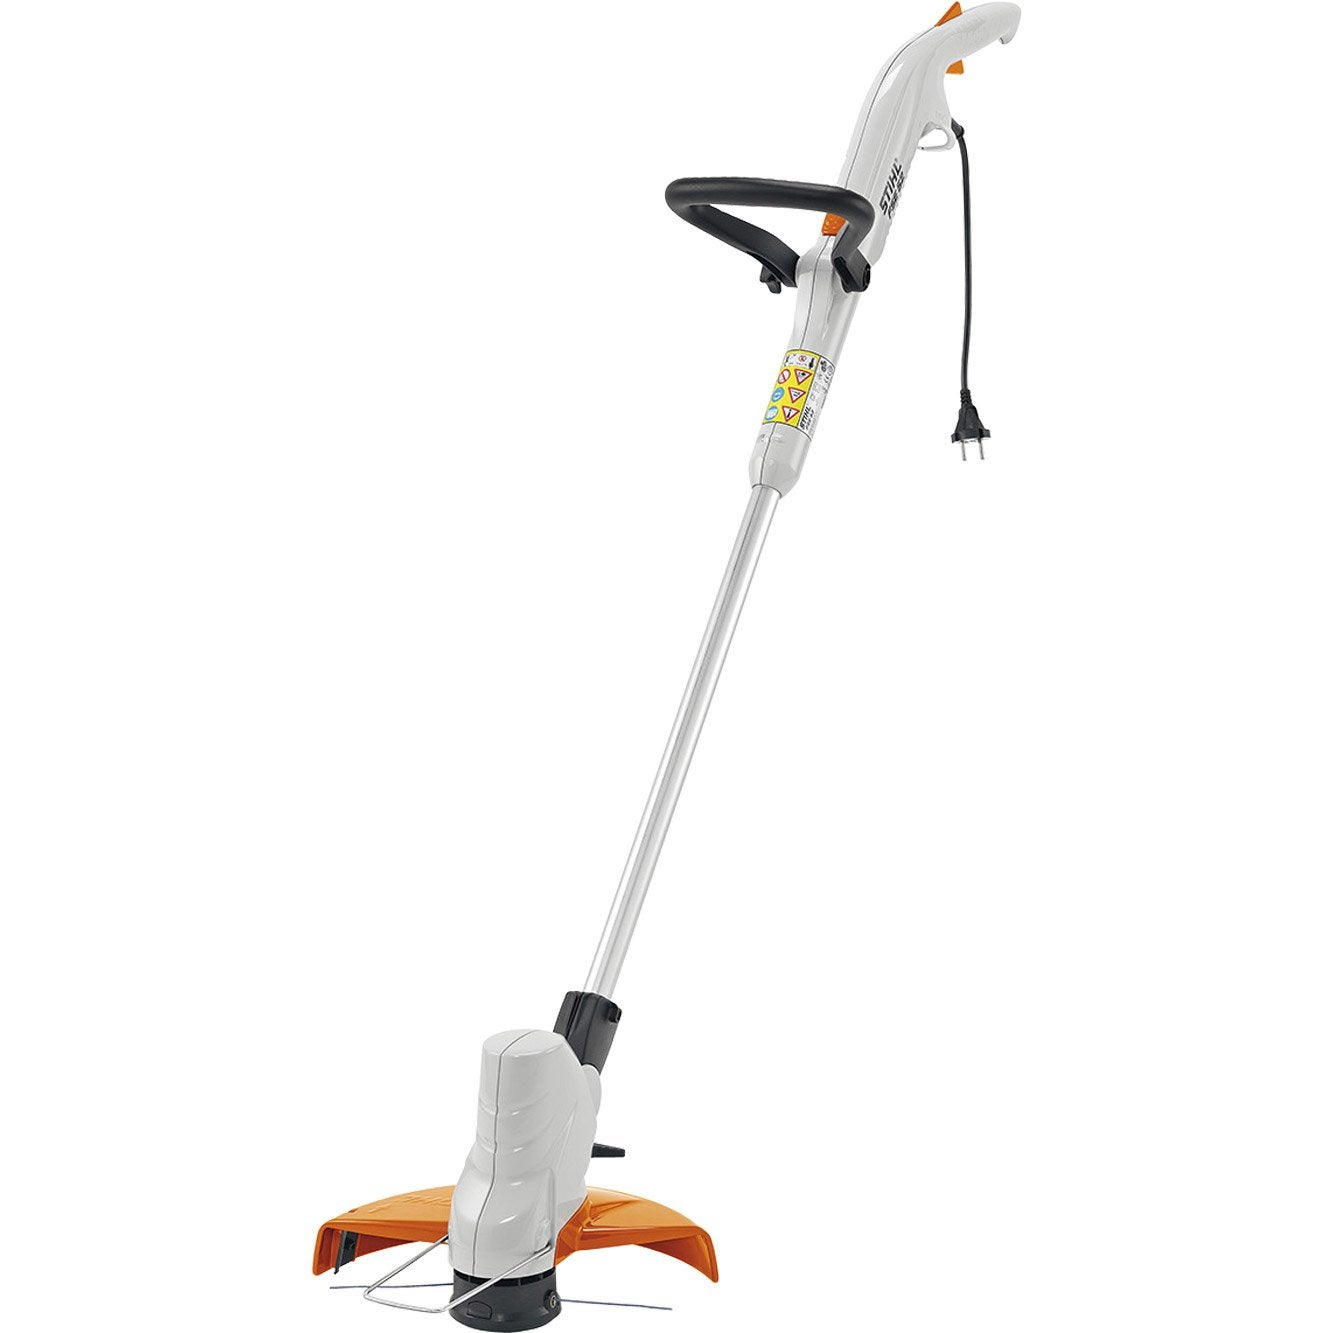 Coupe bordures lectrique stihl fse 52 500 w cm - Coupe bordure stihl batterie ...